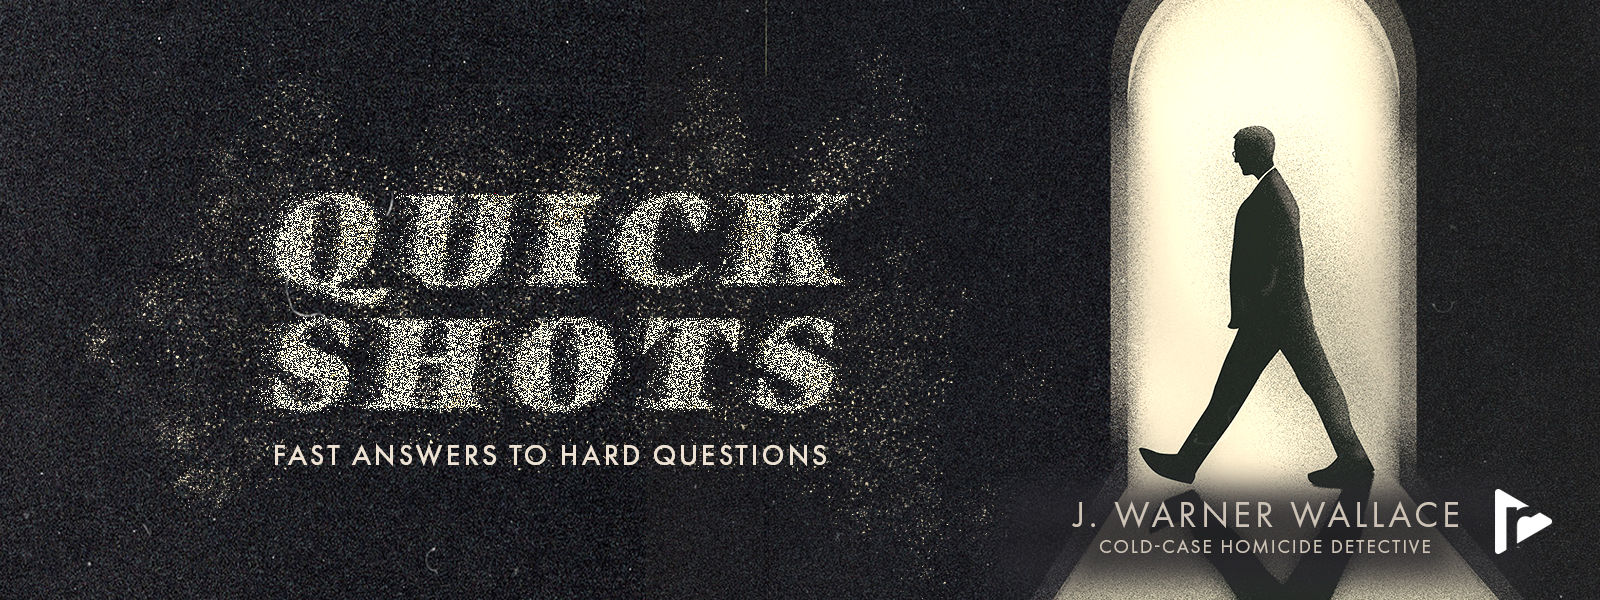 Quick Shots: Fast Answers to Hard Questions